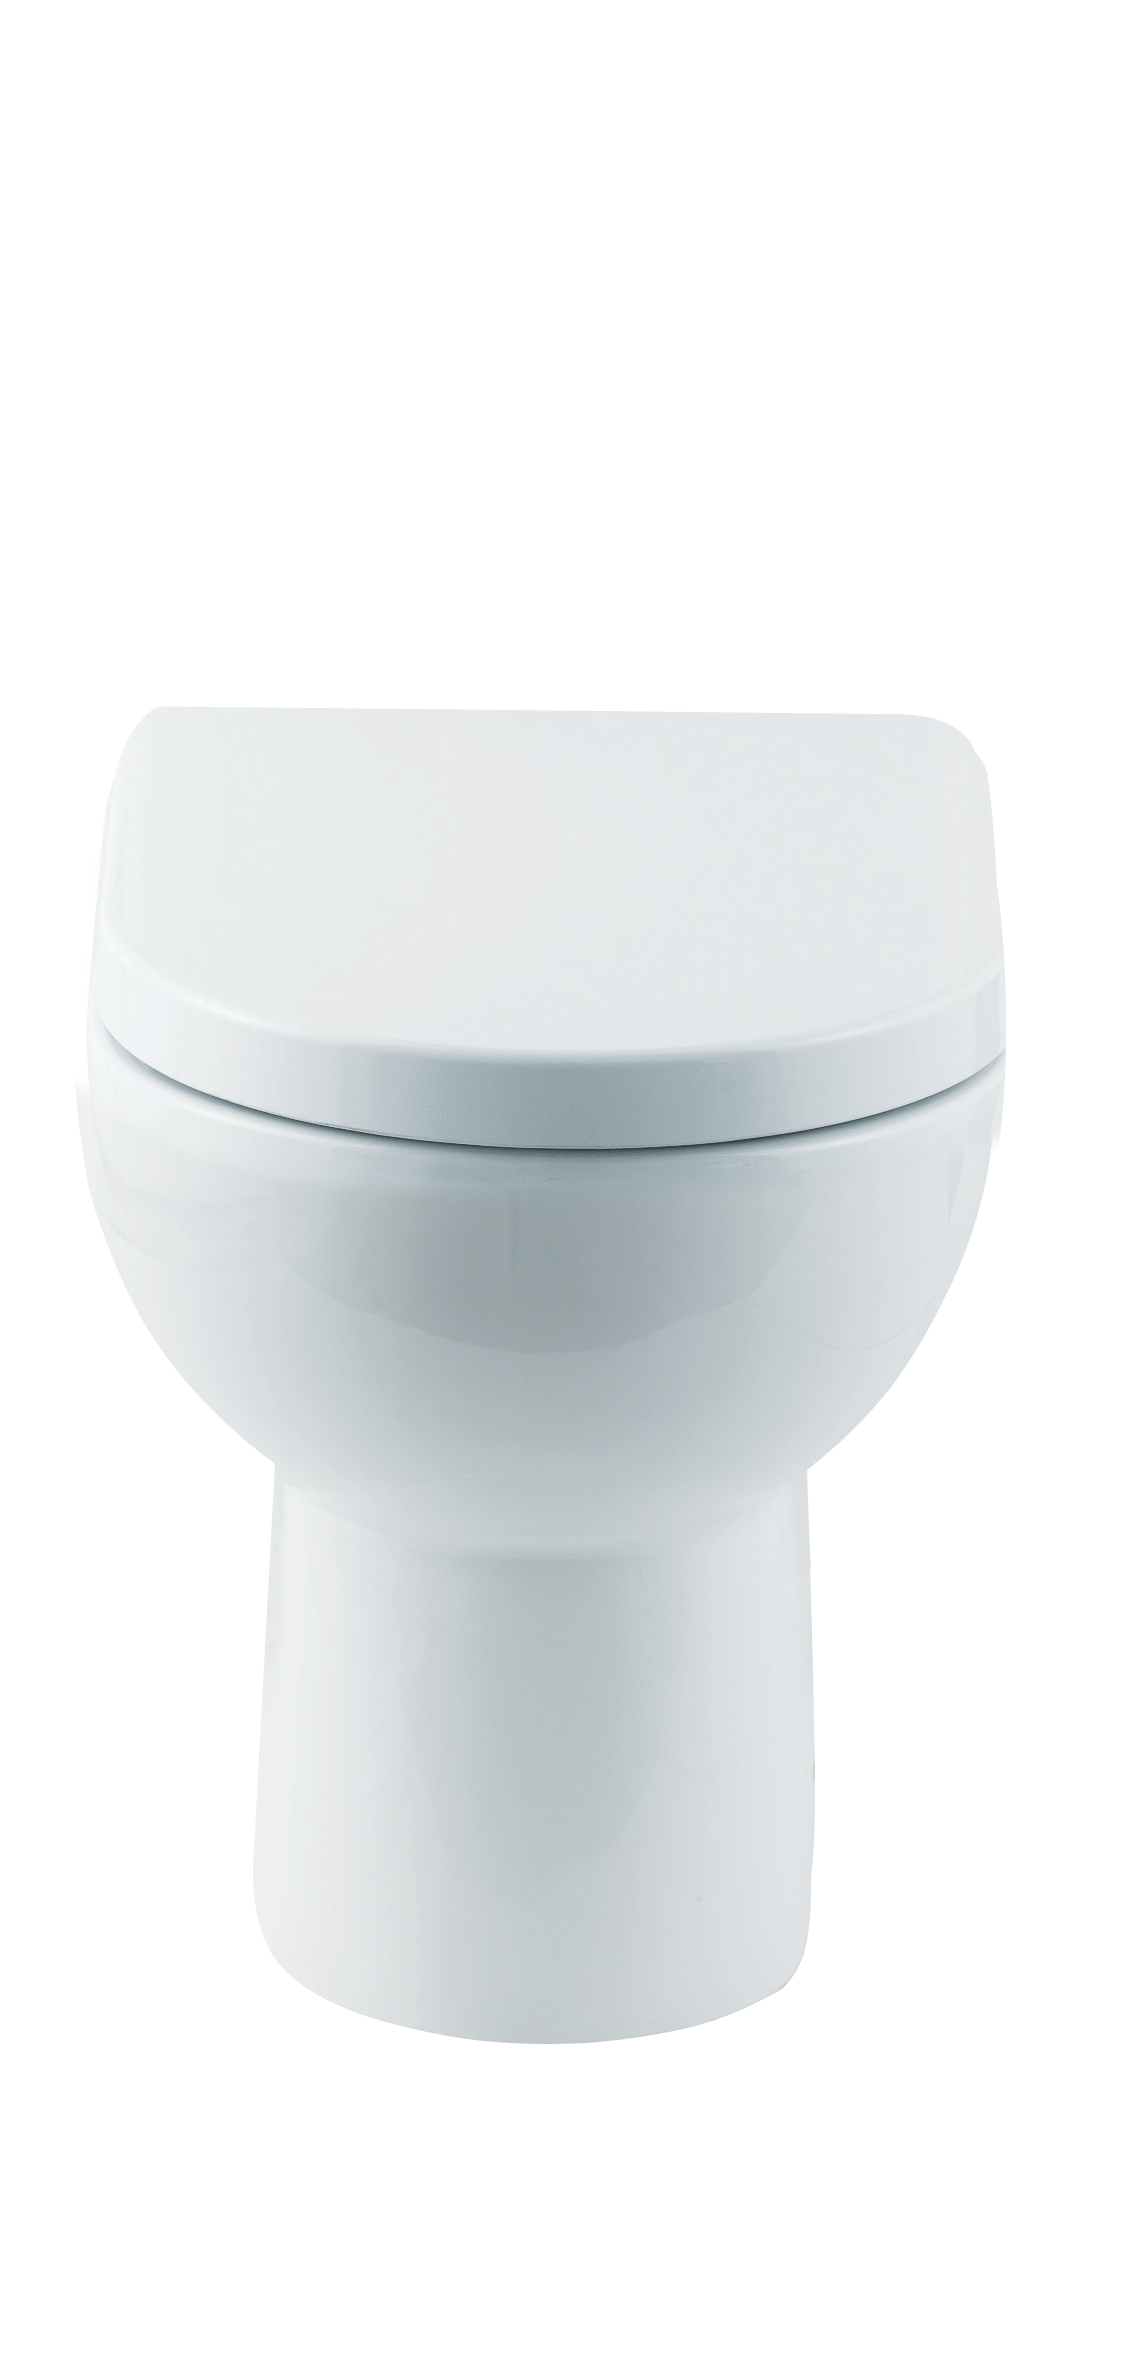 Toilet Top View Png Picture 868044 Toilet Top View Png